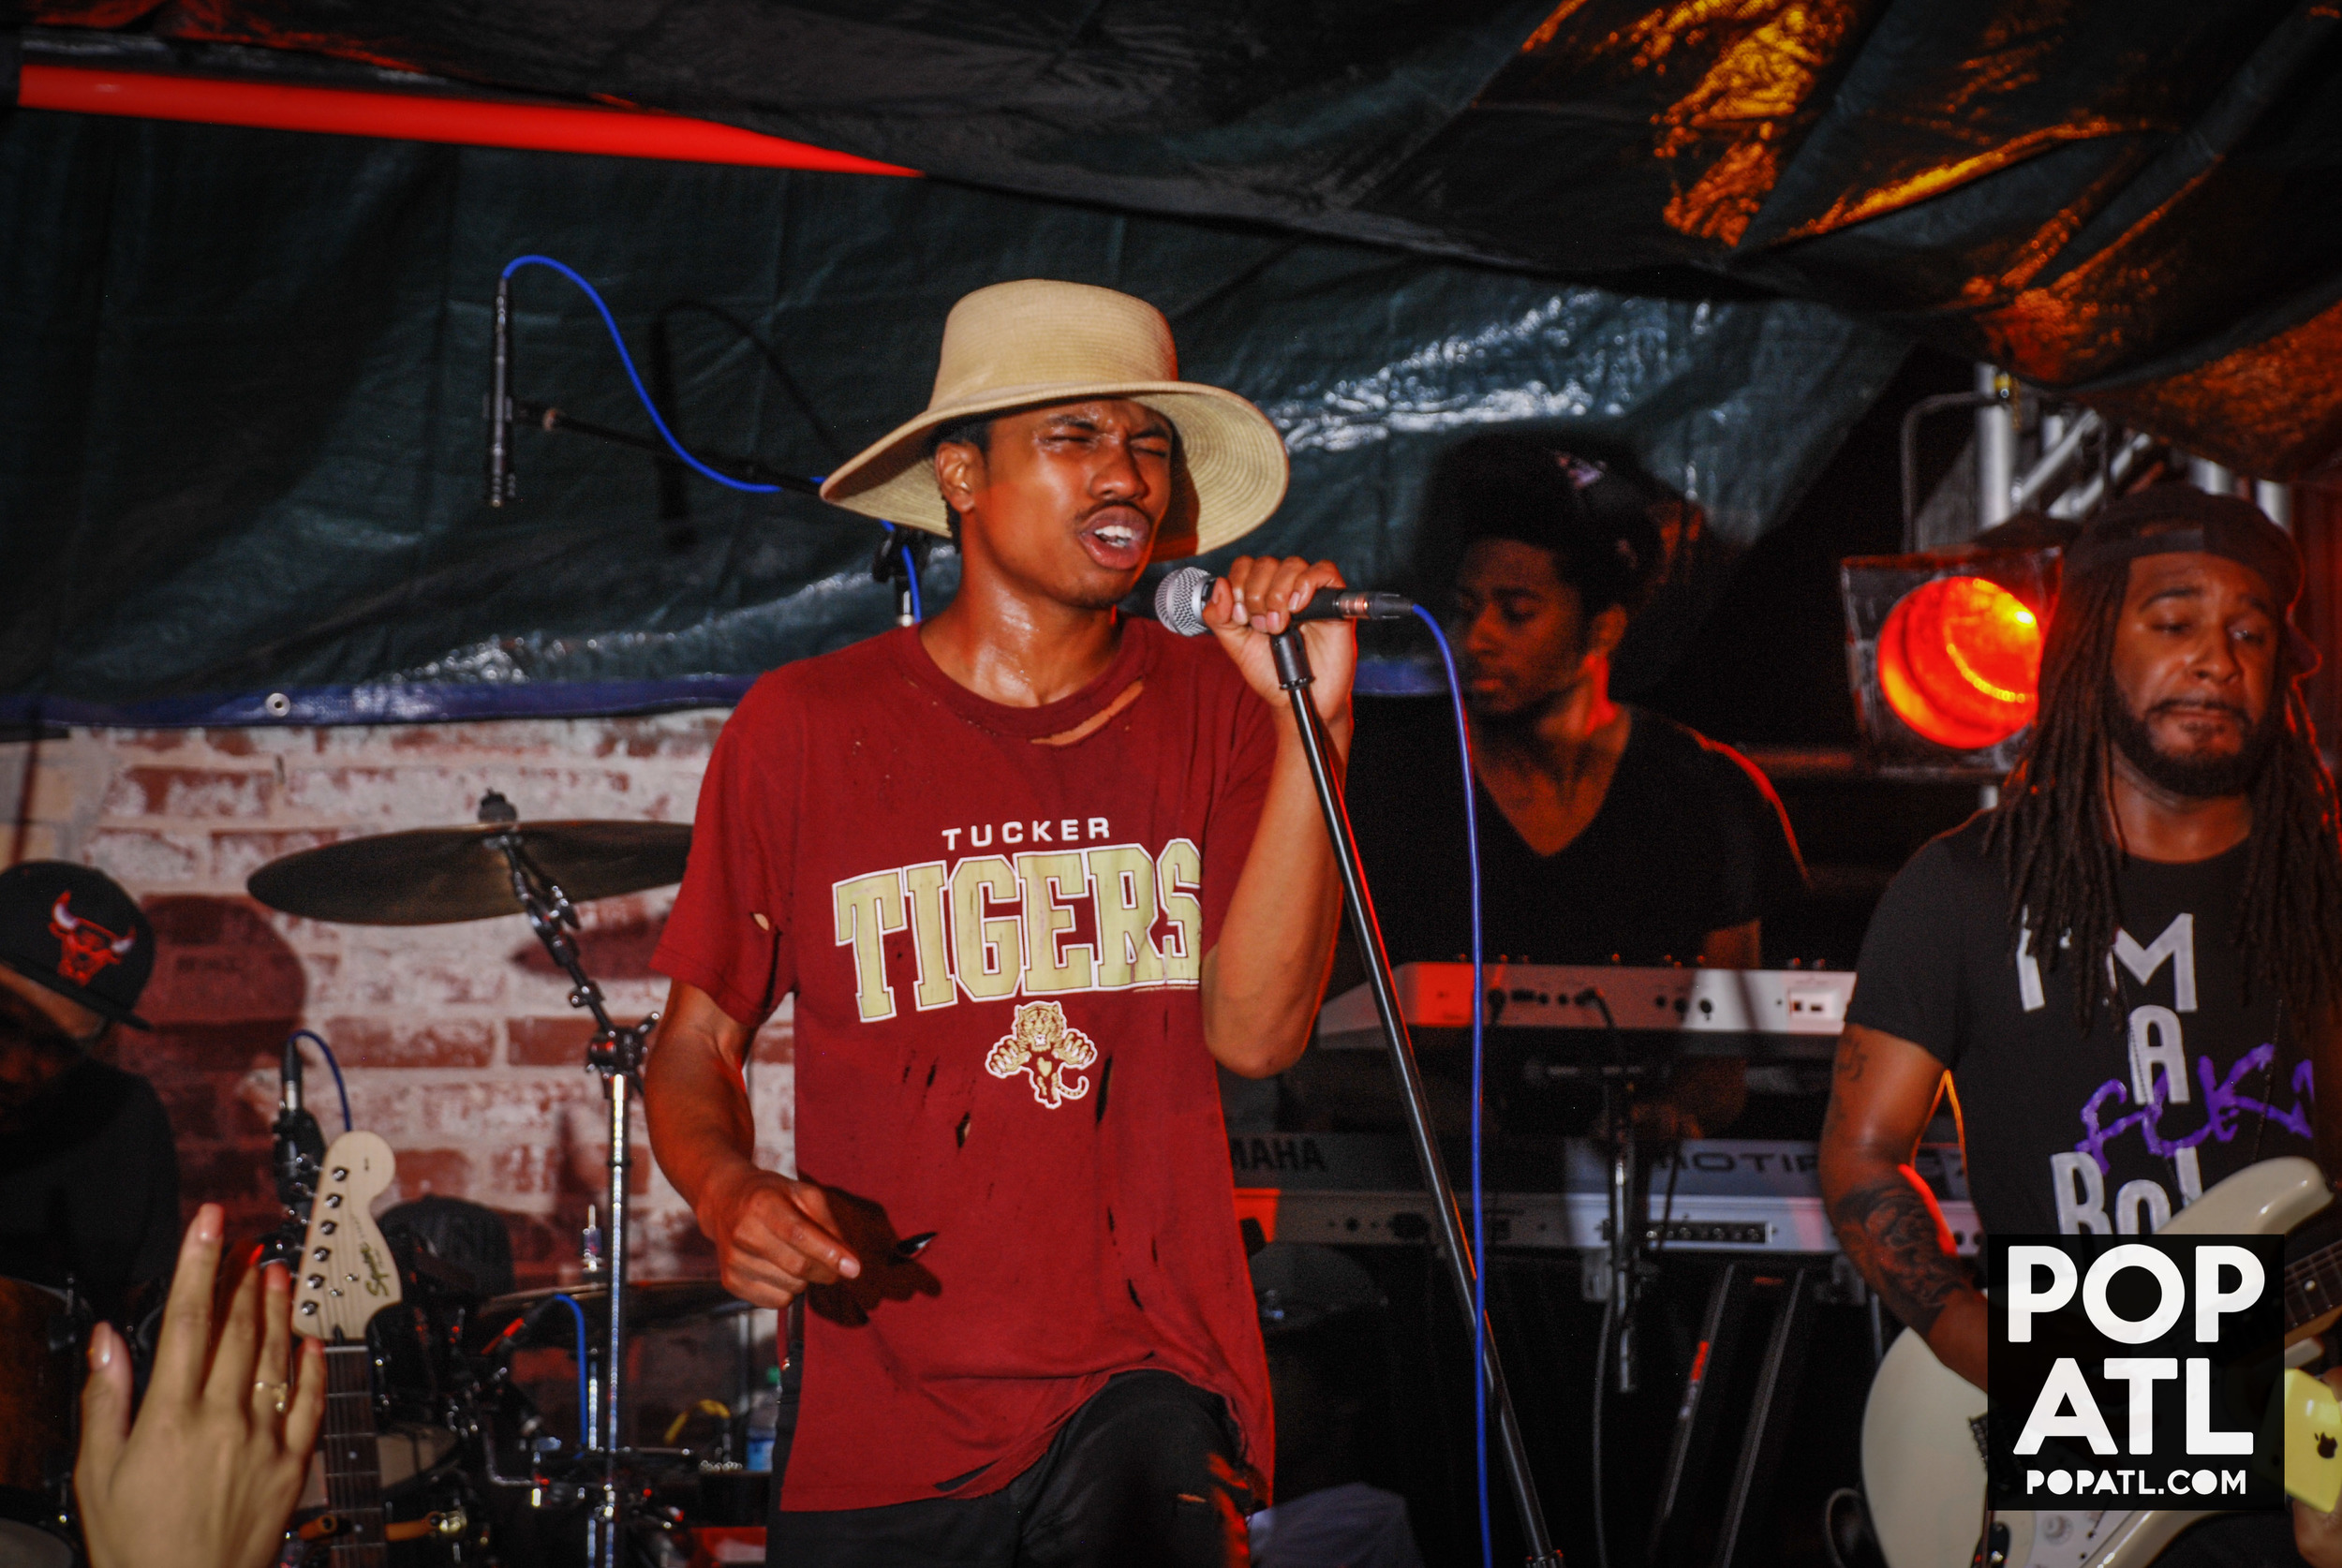 RAURY-RAURFEST-AT-POP-ATL-133.jpg